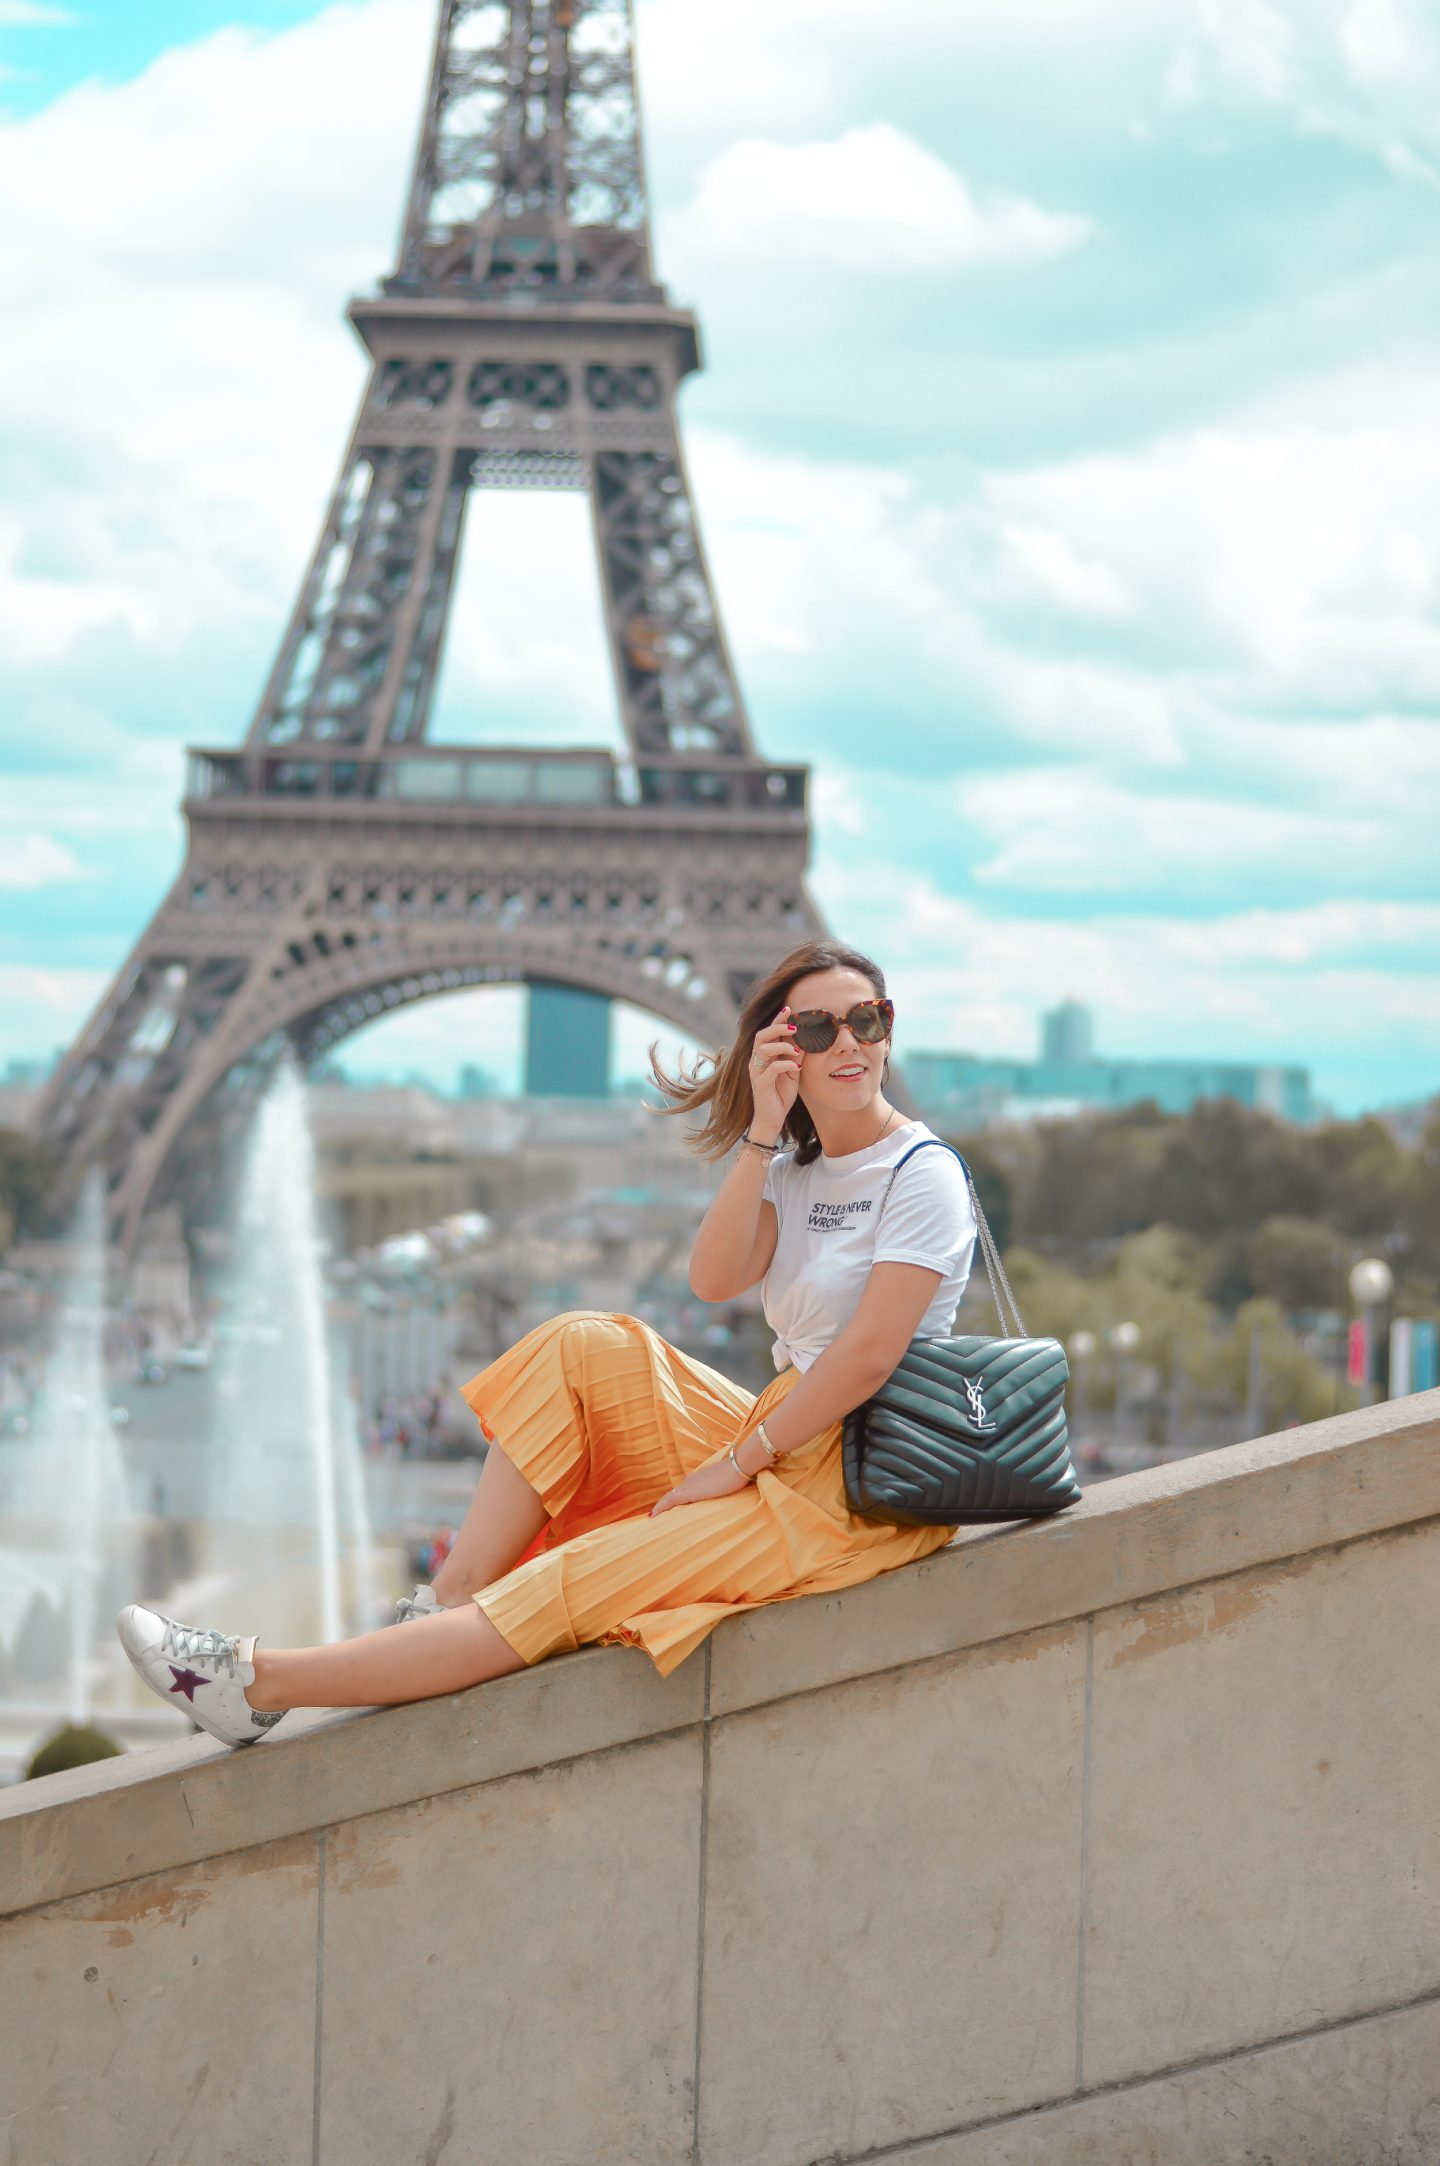 LA TENDANCE DU JAUNE – 1ER LOOK À PARIS